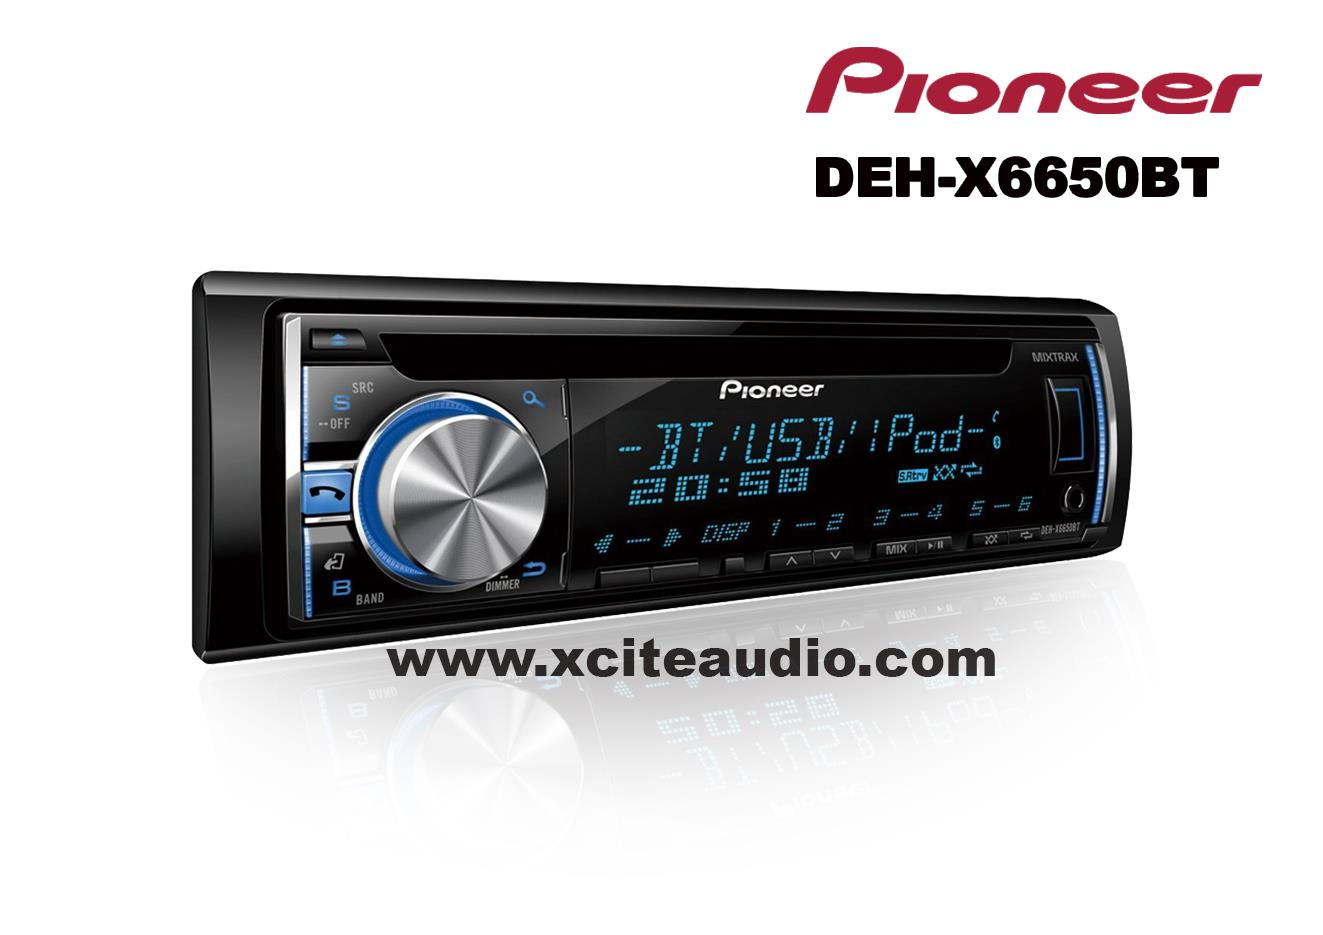 pioneer deh x6650bt car usb ipod bluetooth pandora player mixtrax xciteaudio 1501 22 xciteaudio@15?resize\\\\\\\\\\\\\\\=665%2C470 pioneer deh p6900ub wiring harness pioneer radio wiring harness Pioneer 16 Pin Wiring Diagram at gsmx.co